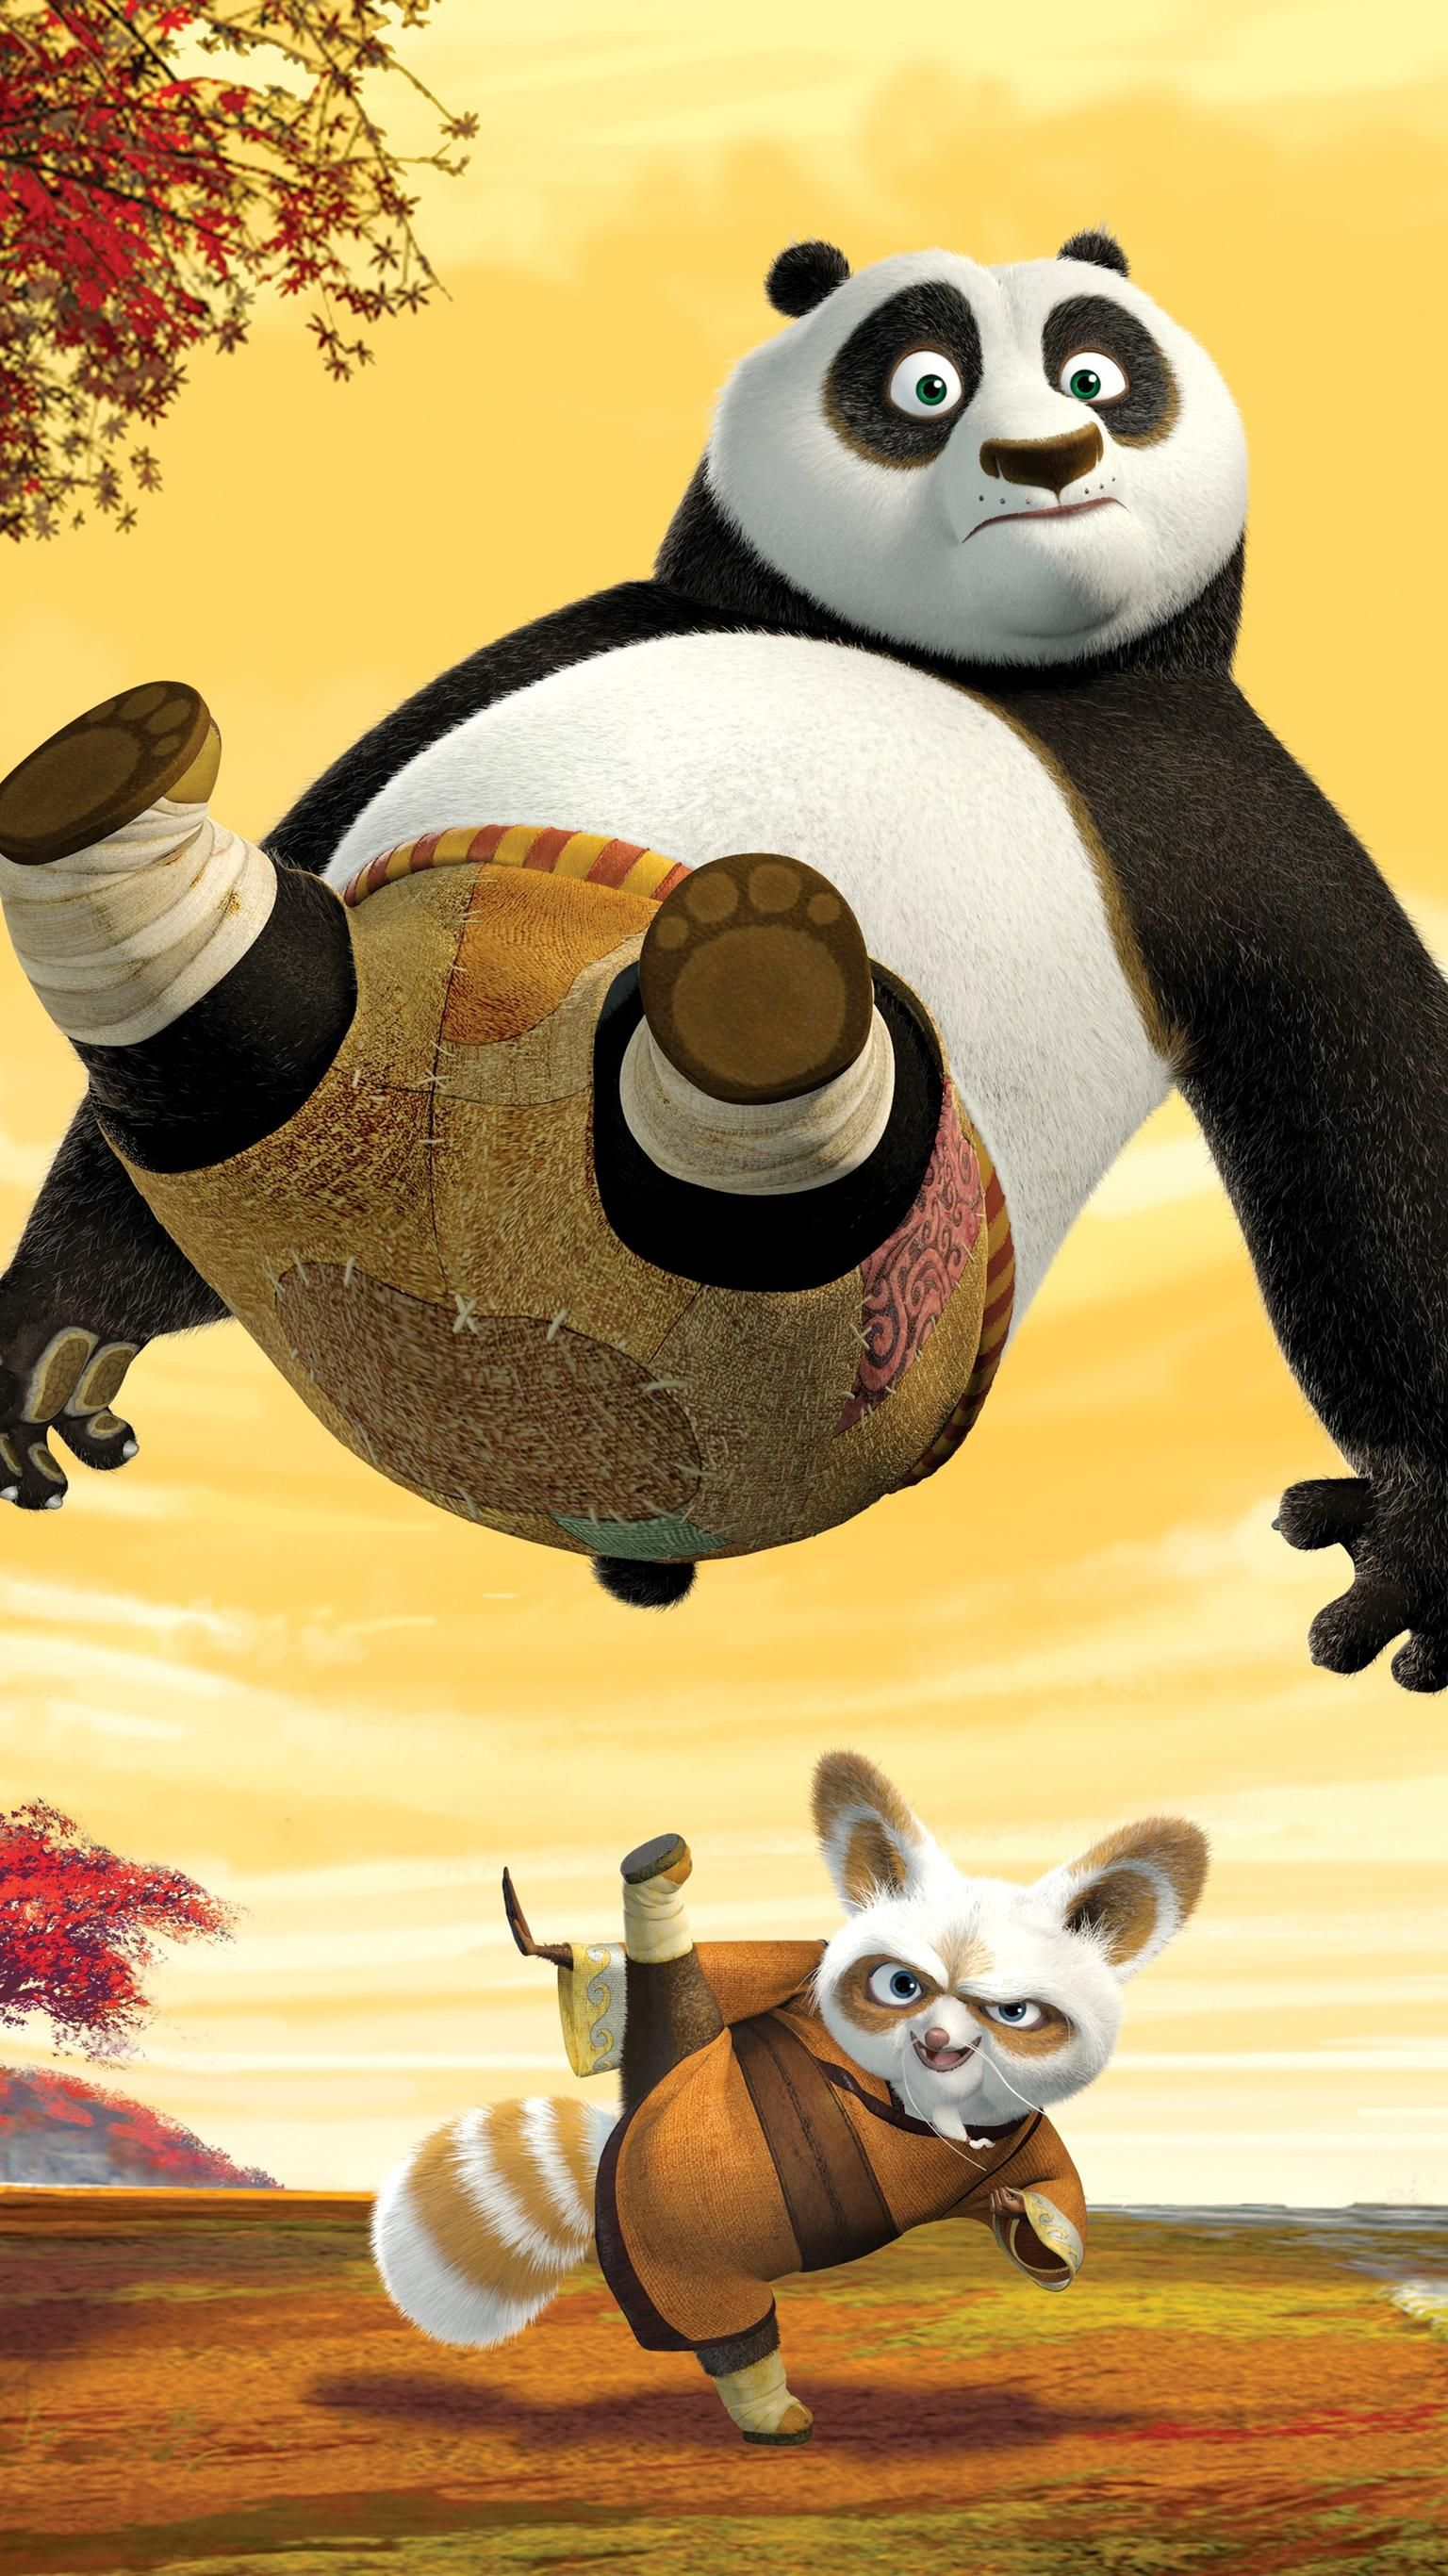 Kung Fu Panda 2008 Phone Wallpaper Moviemania Dreamworks Art Kung Fu Panda Cute Cartoon Wallpapers